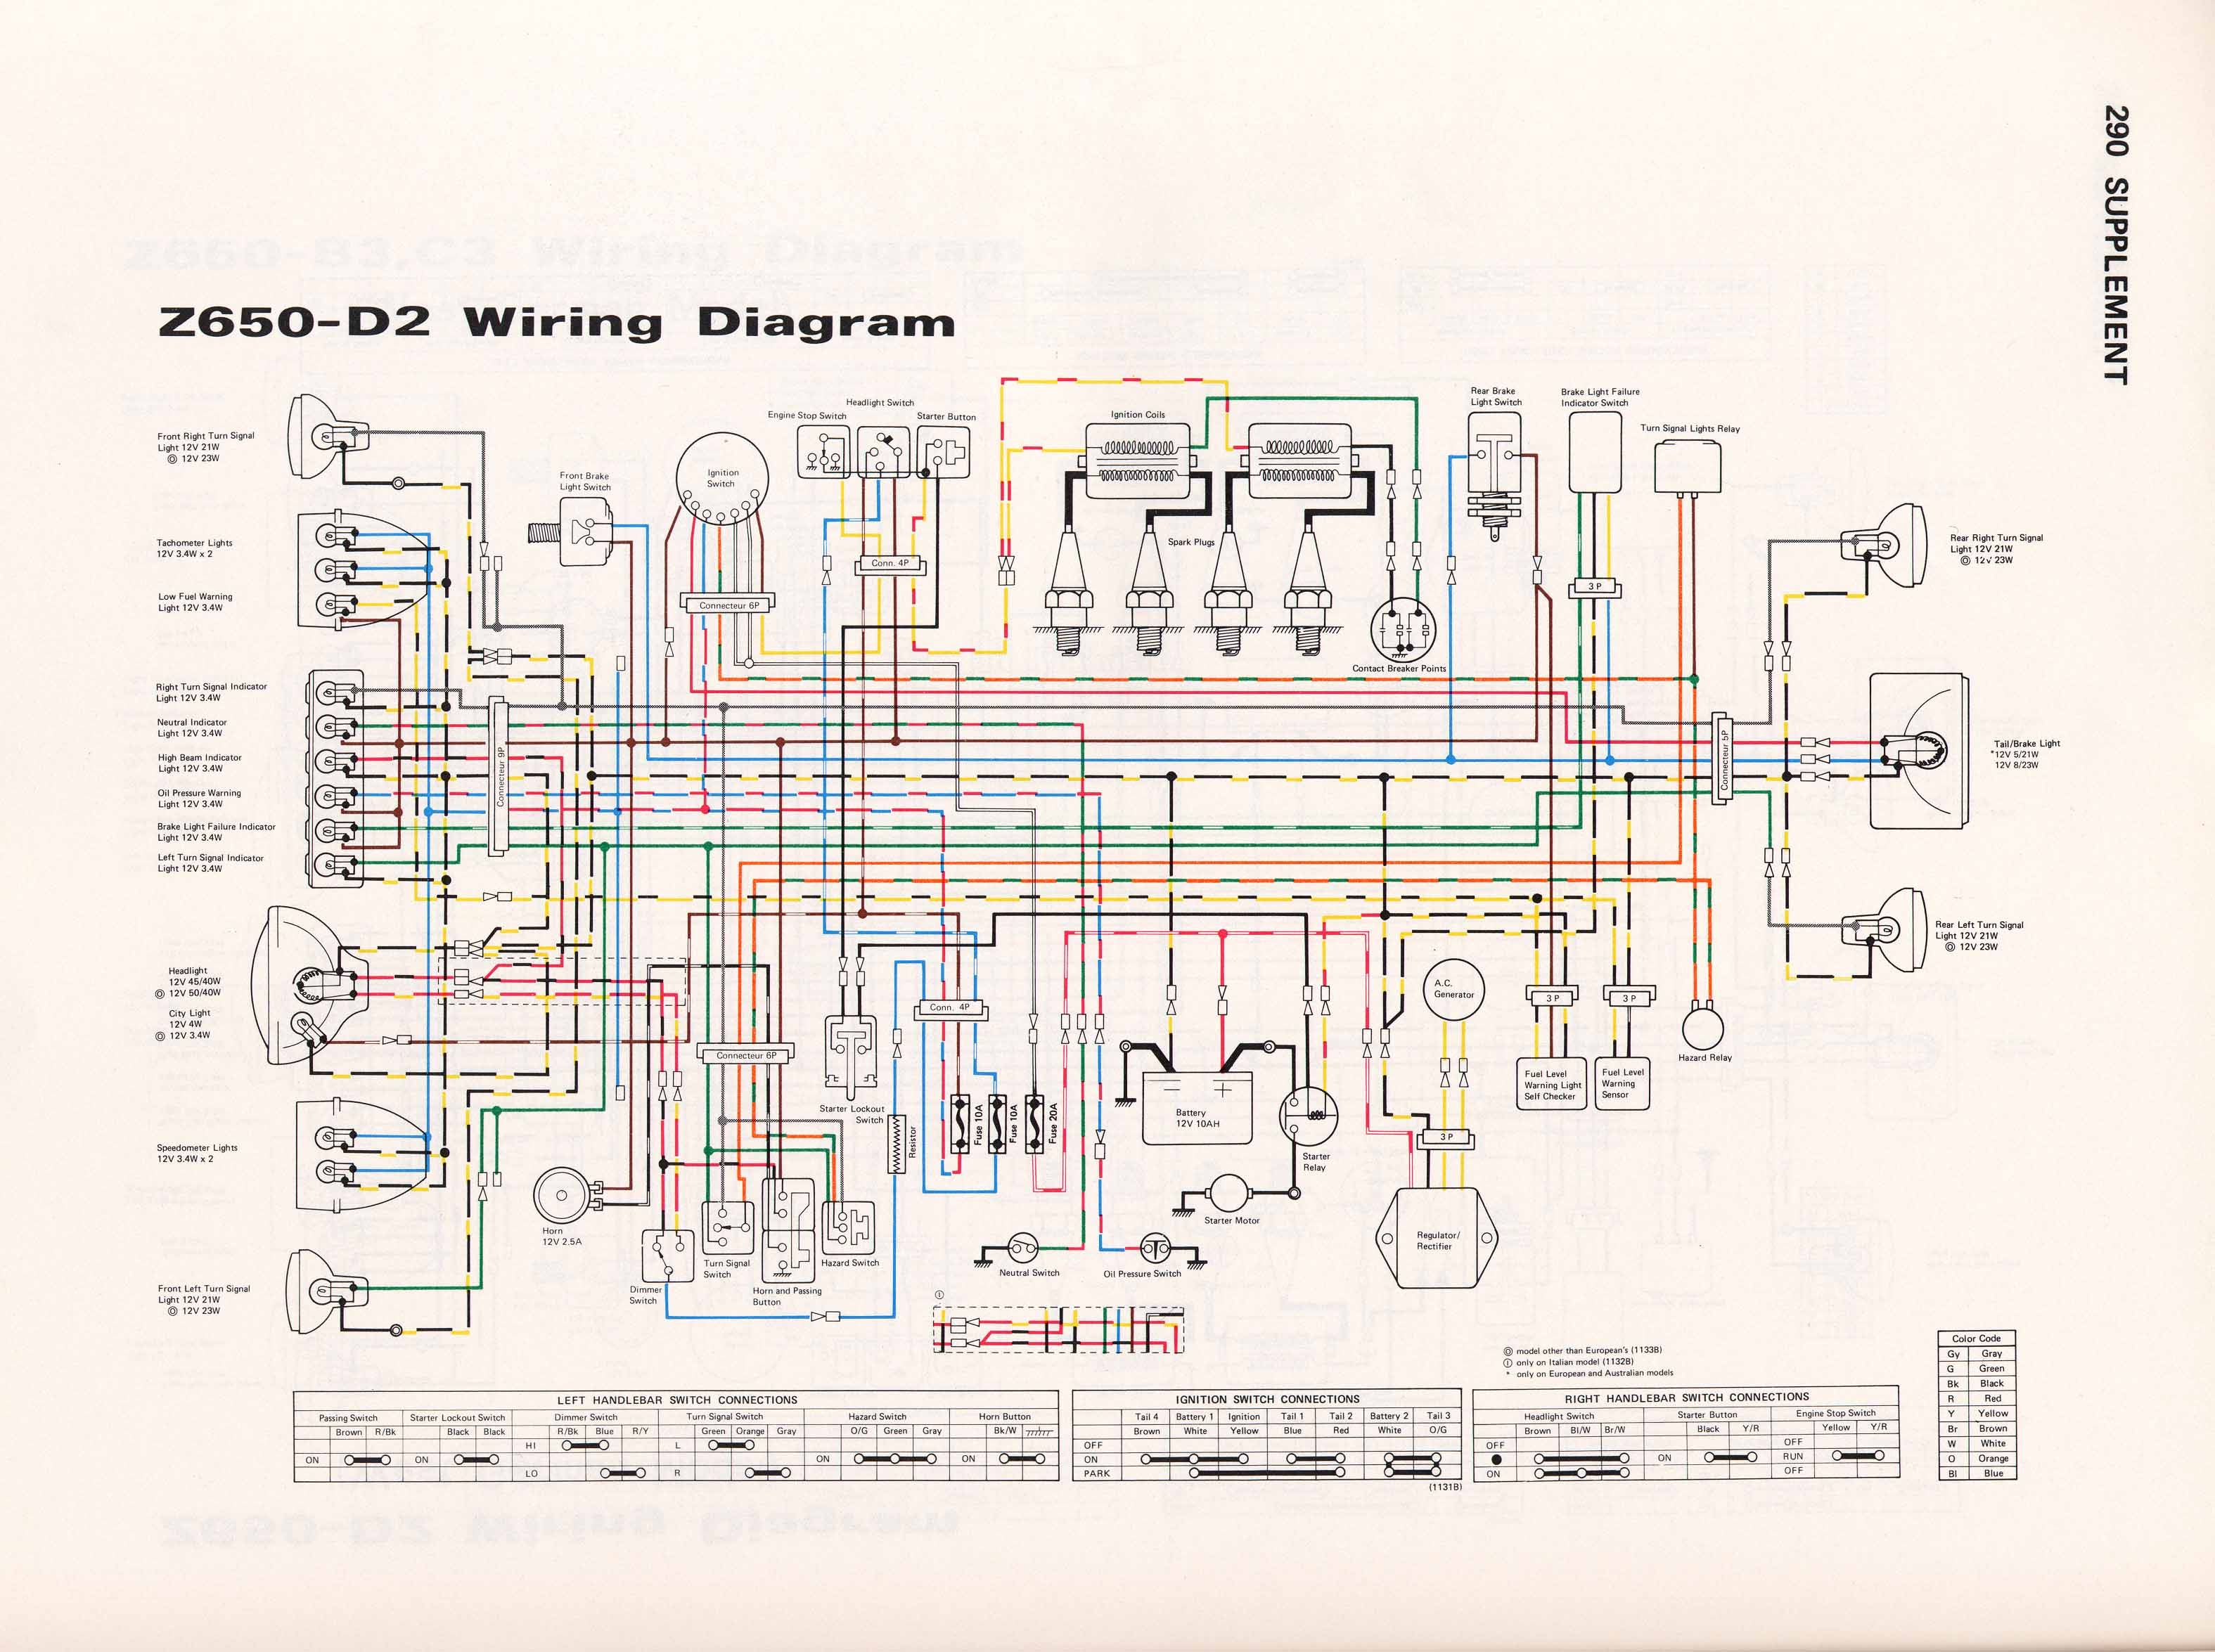 Kawasaki Z650 Wiring Diagram Circuit Symbols 636 Kz650 Colour Loom Diagrams Example Electrical Rh Cranejapan Co Zx6r